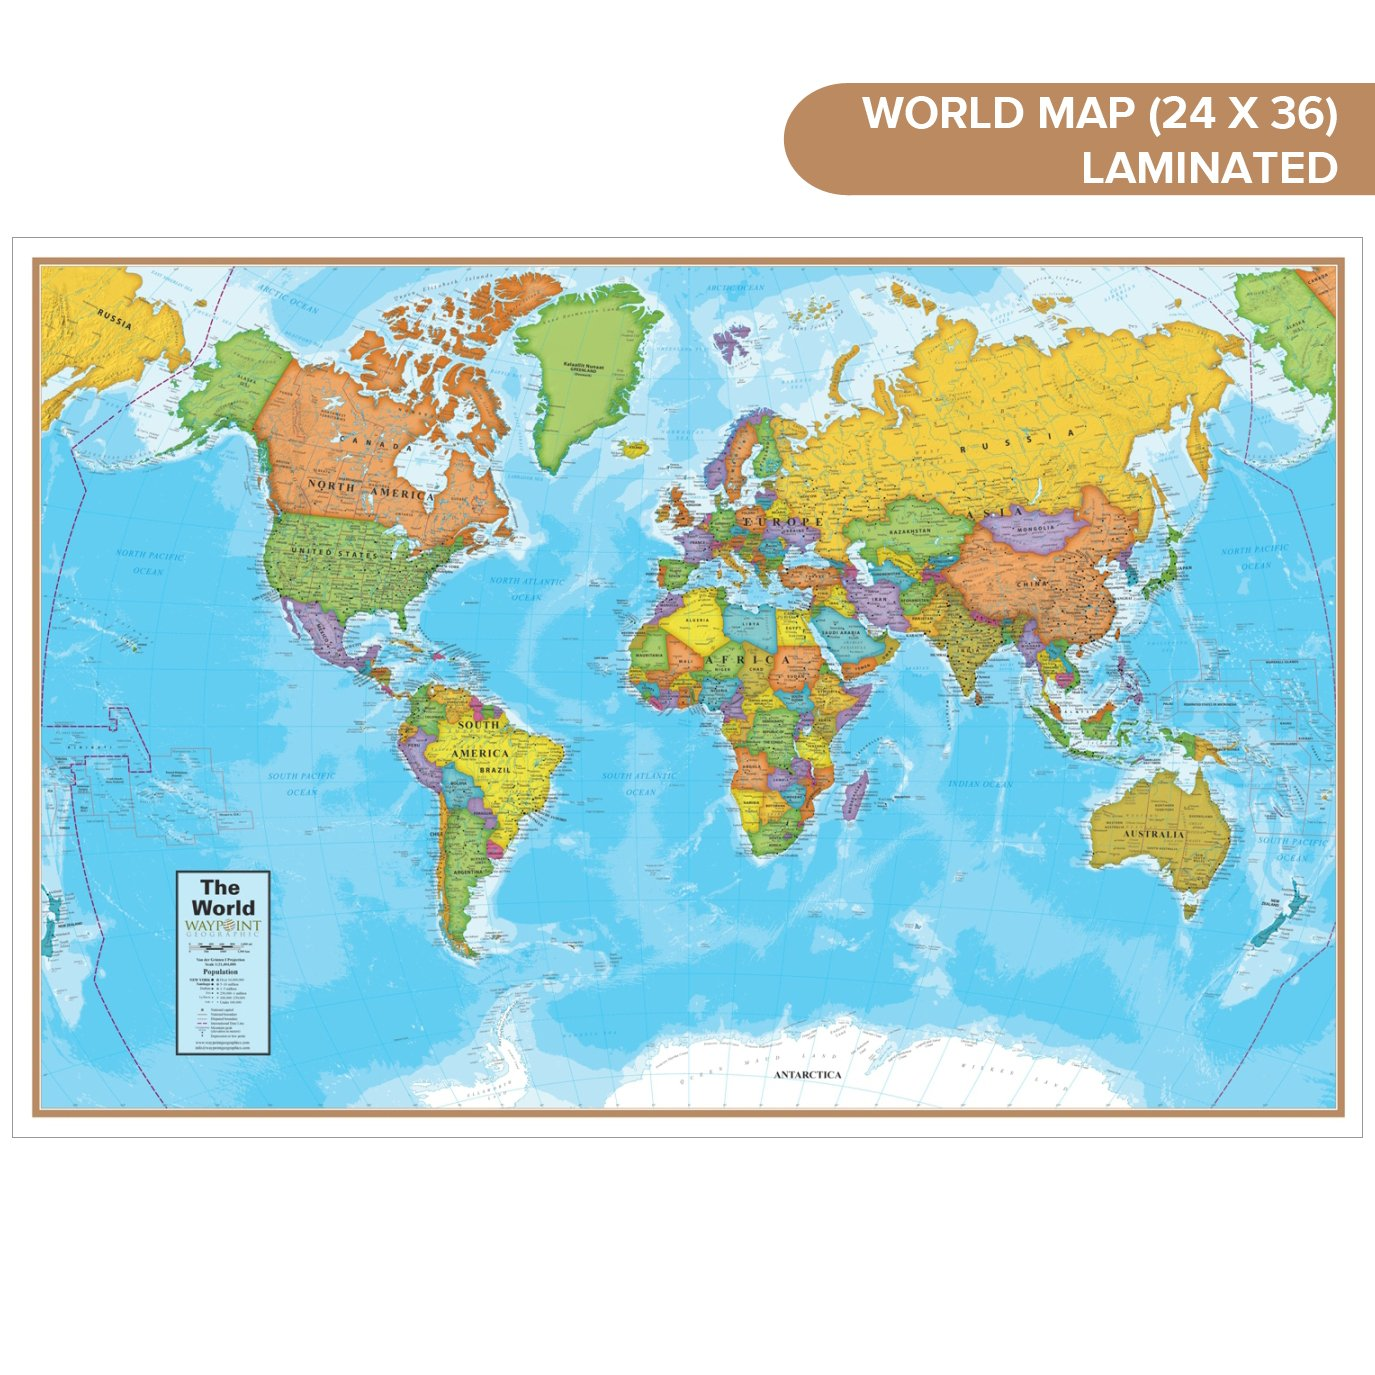 Waypoint Geographic Blue Ocean World Wall Map (24'' x 36'') - Current up-to-Date - 1000's of Named Locations & Points of Interest - Rolled & Laminated - Display in Office, Classroom or Home